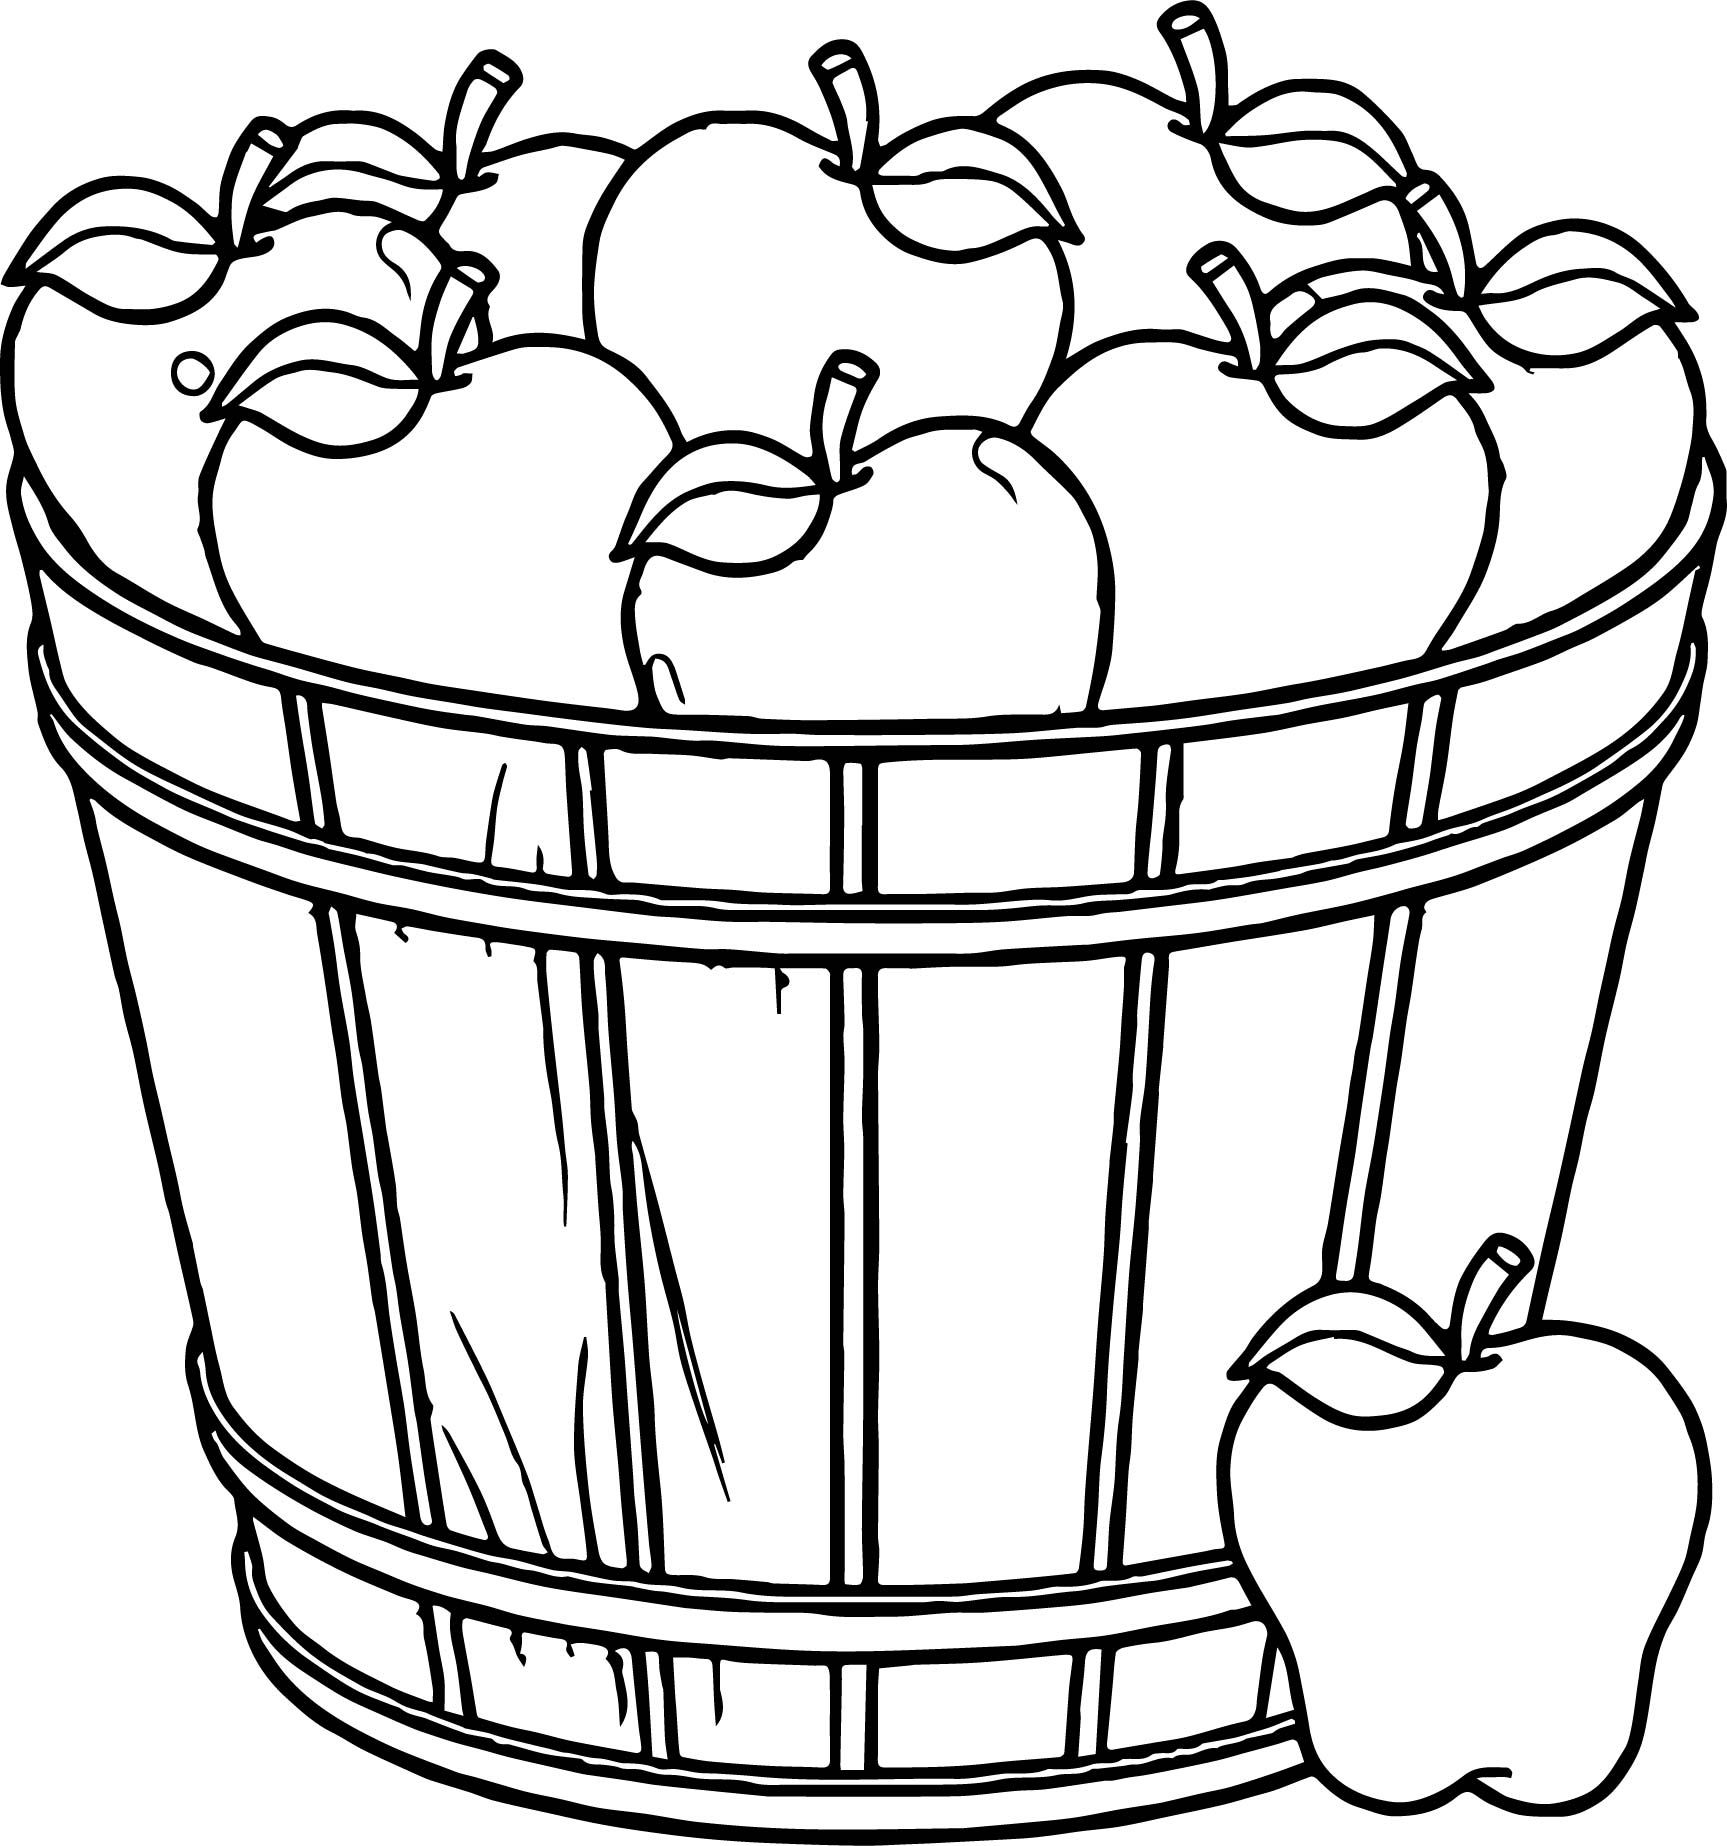 coloring apple basket clipart panda free clipart images apple coloring basket